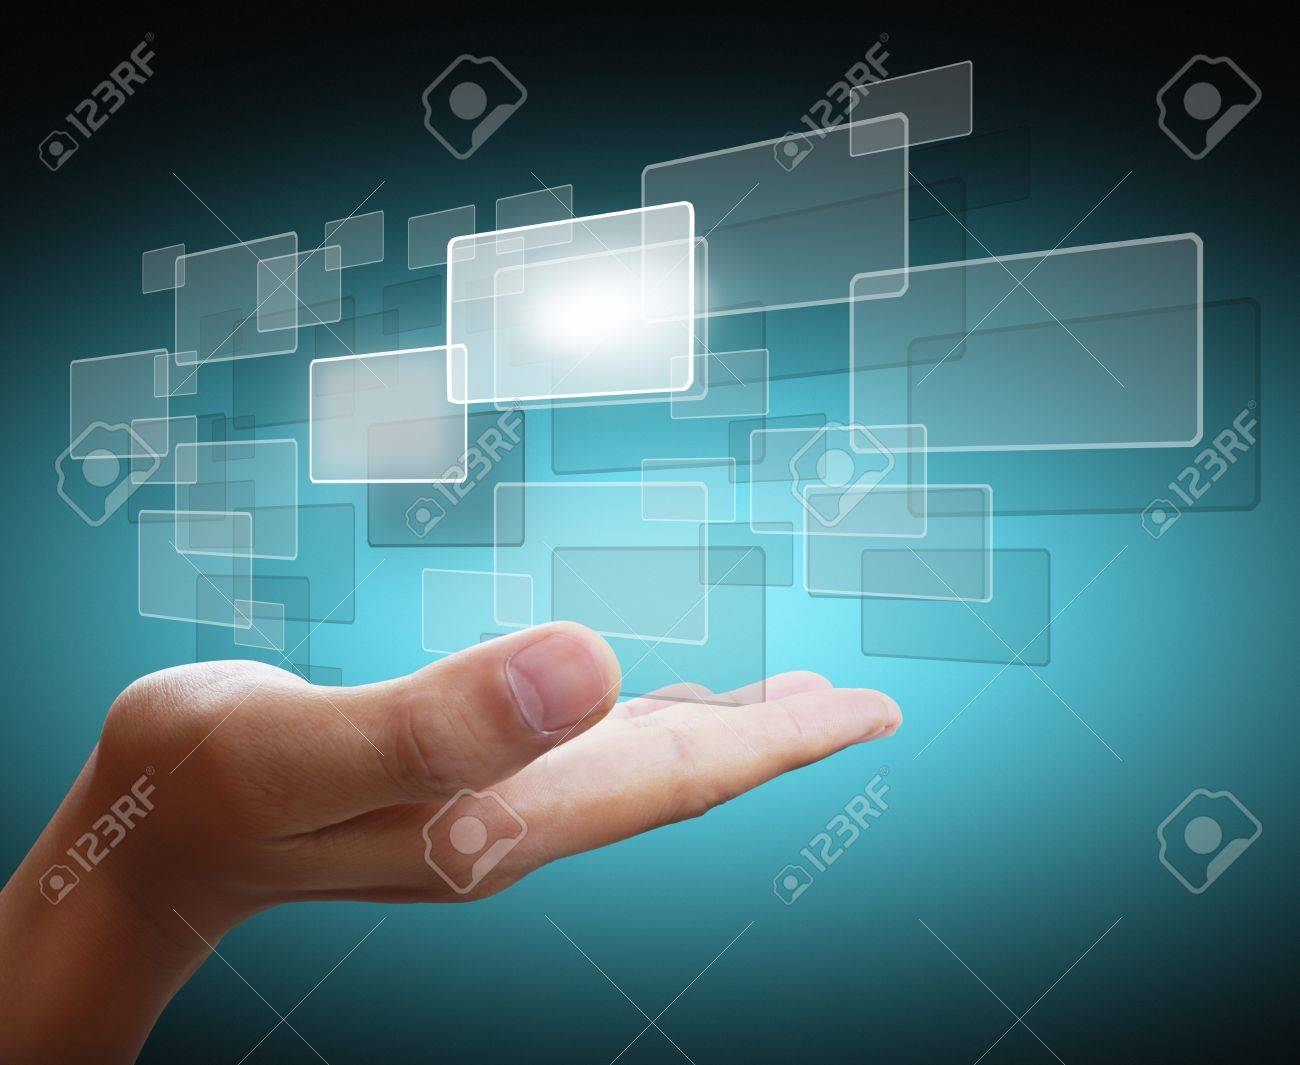 hand pushing on a touch screen interface Stock Photo - 11236659